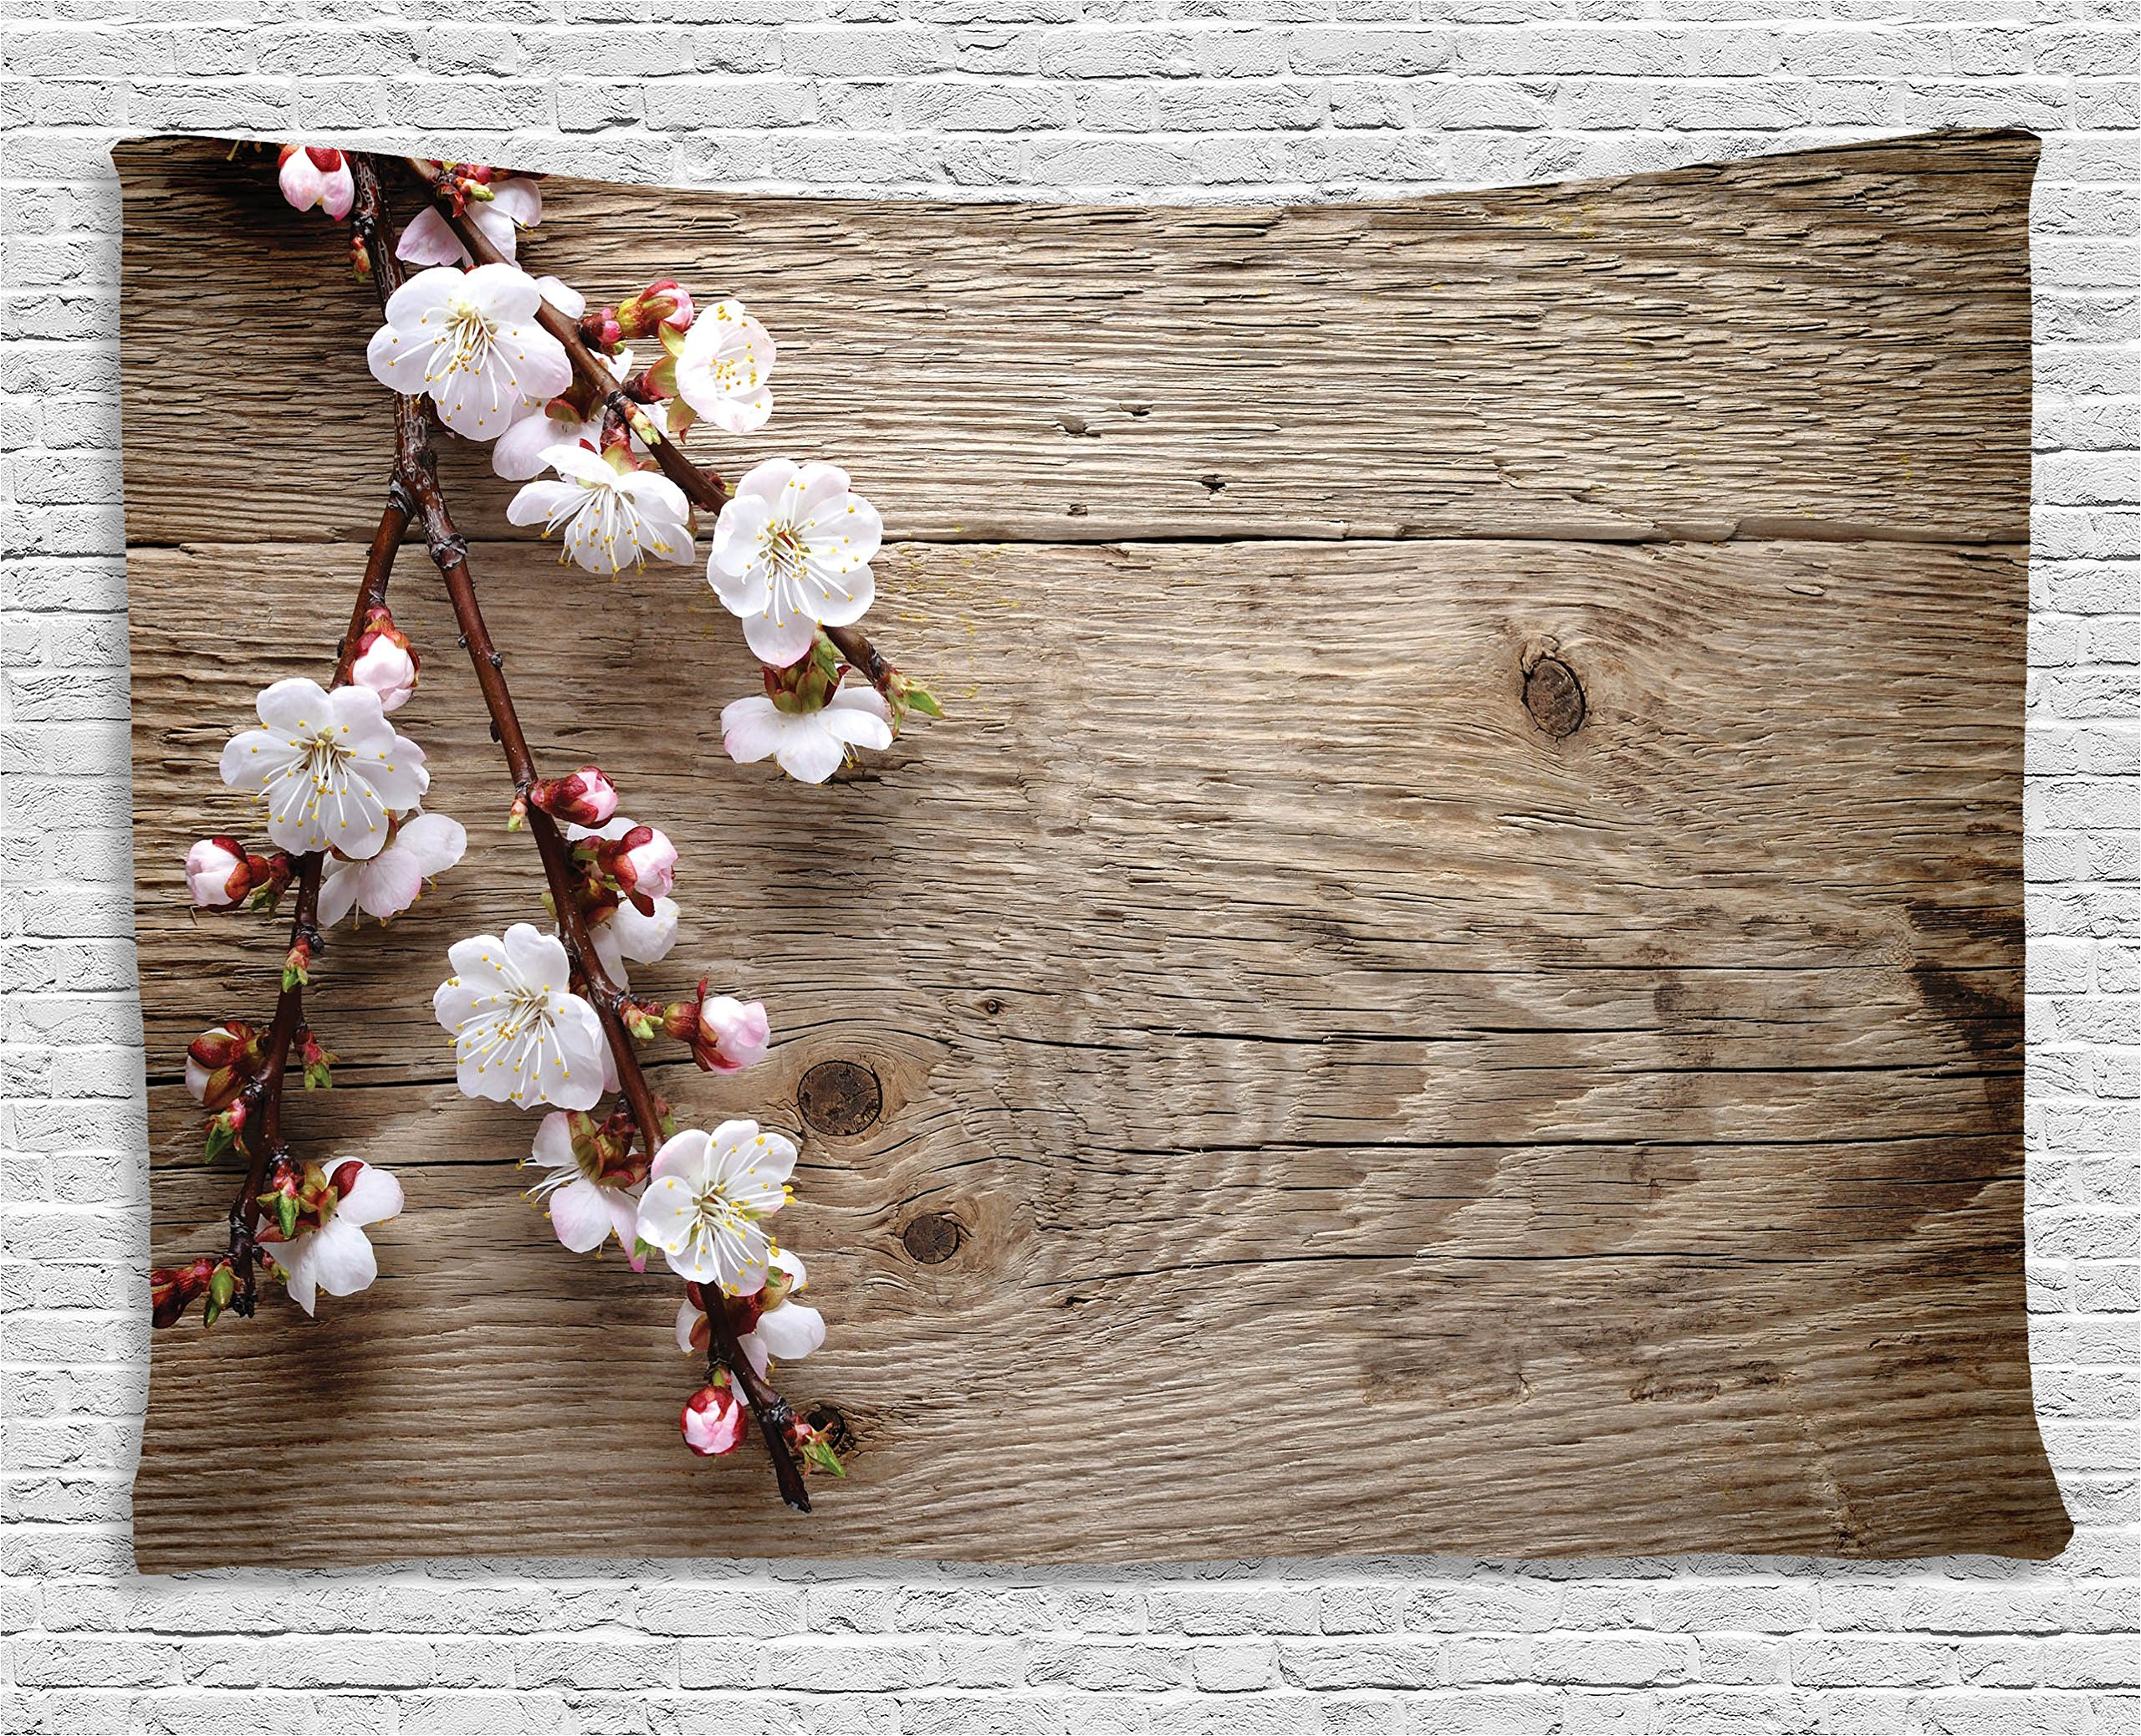 Rustic Home Decor Tapestry by Ambesonne, Romantic Spring Cherry Blossom Branch over Old Table Love Valentines, Wall Hanging for Bedroom Living Room Dorm, 60WX40L Inches, Brown White